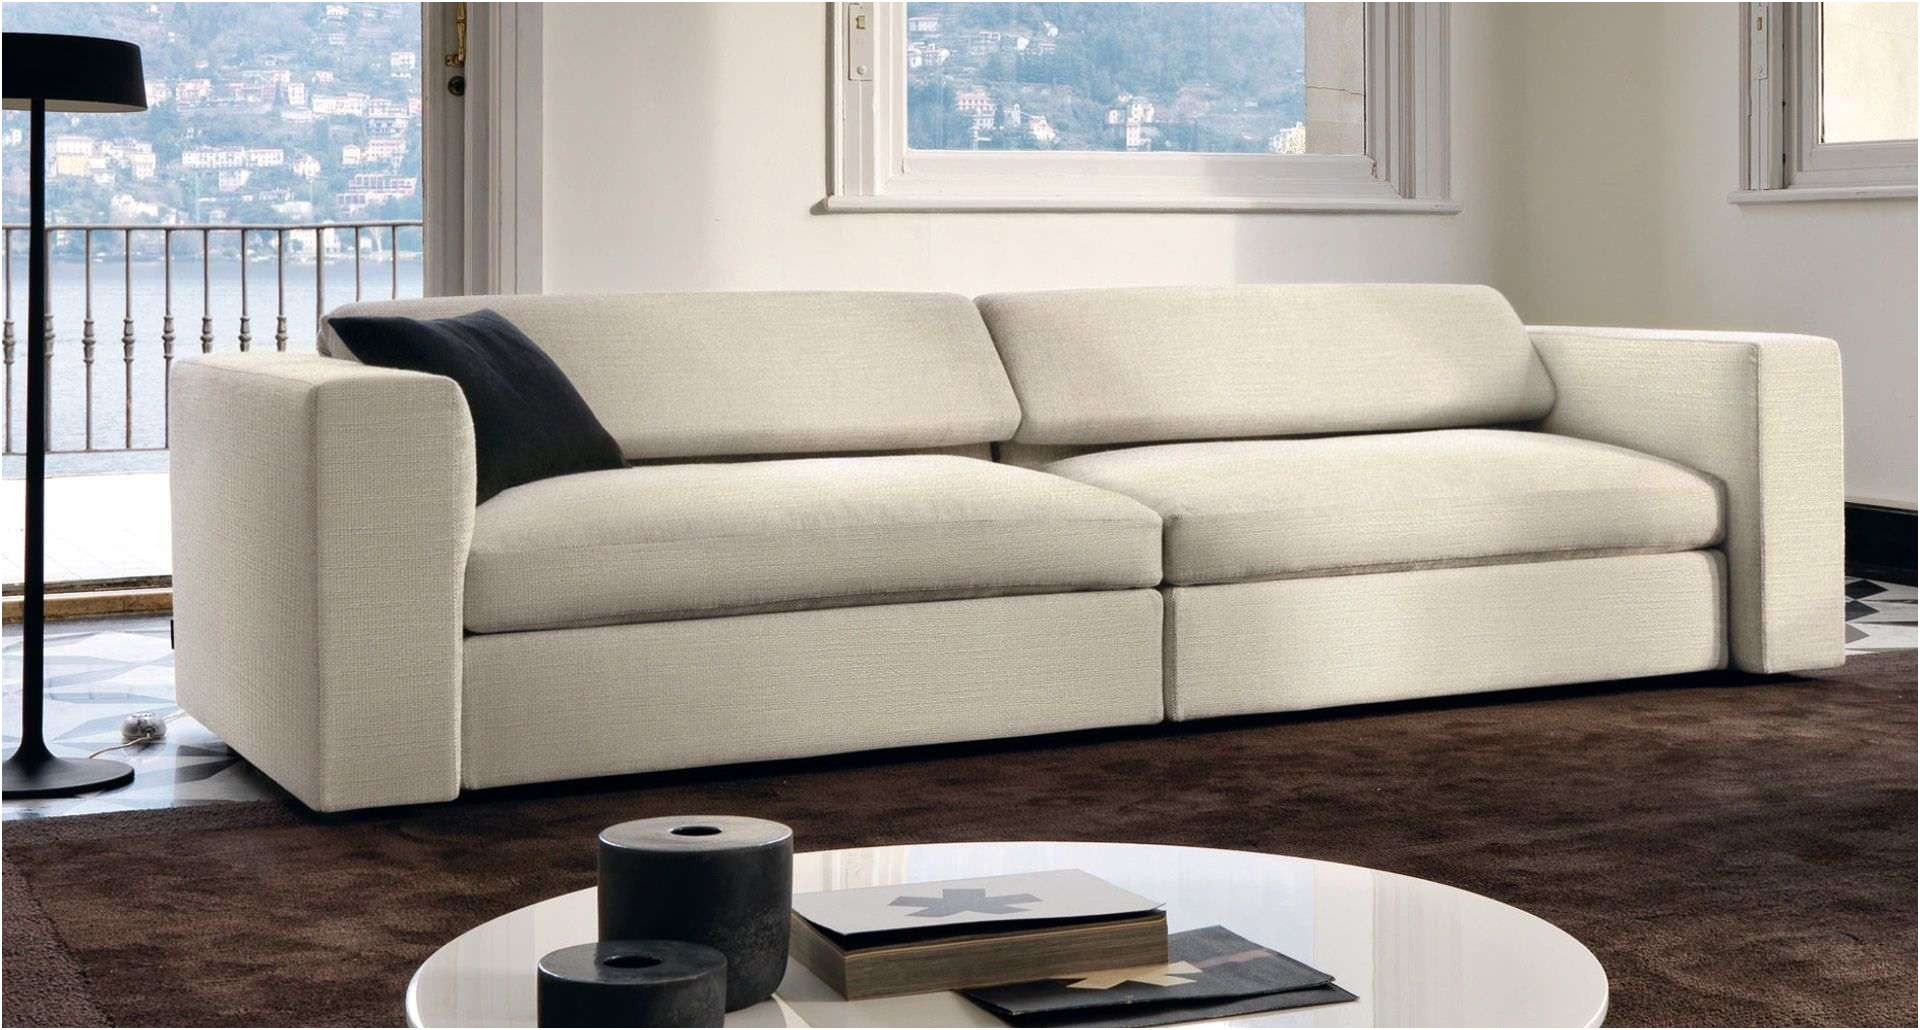 Fortgeschritten couch grau stoff genuine leather couches italian leather sofa contemporary sofa modern